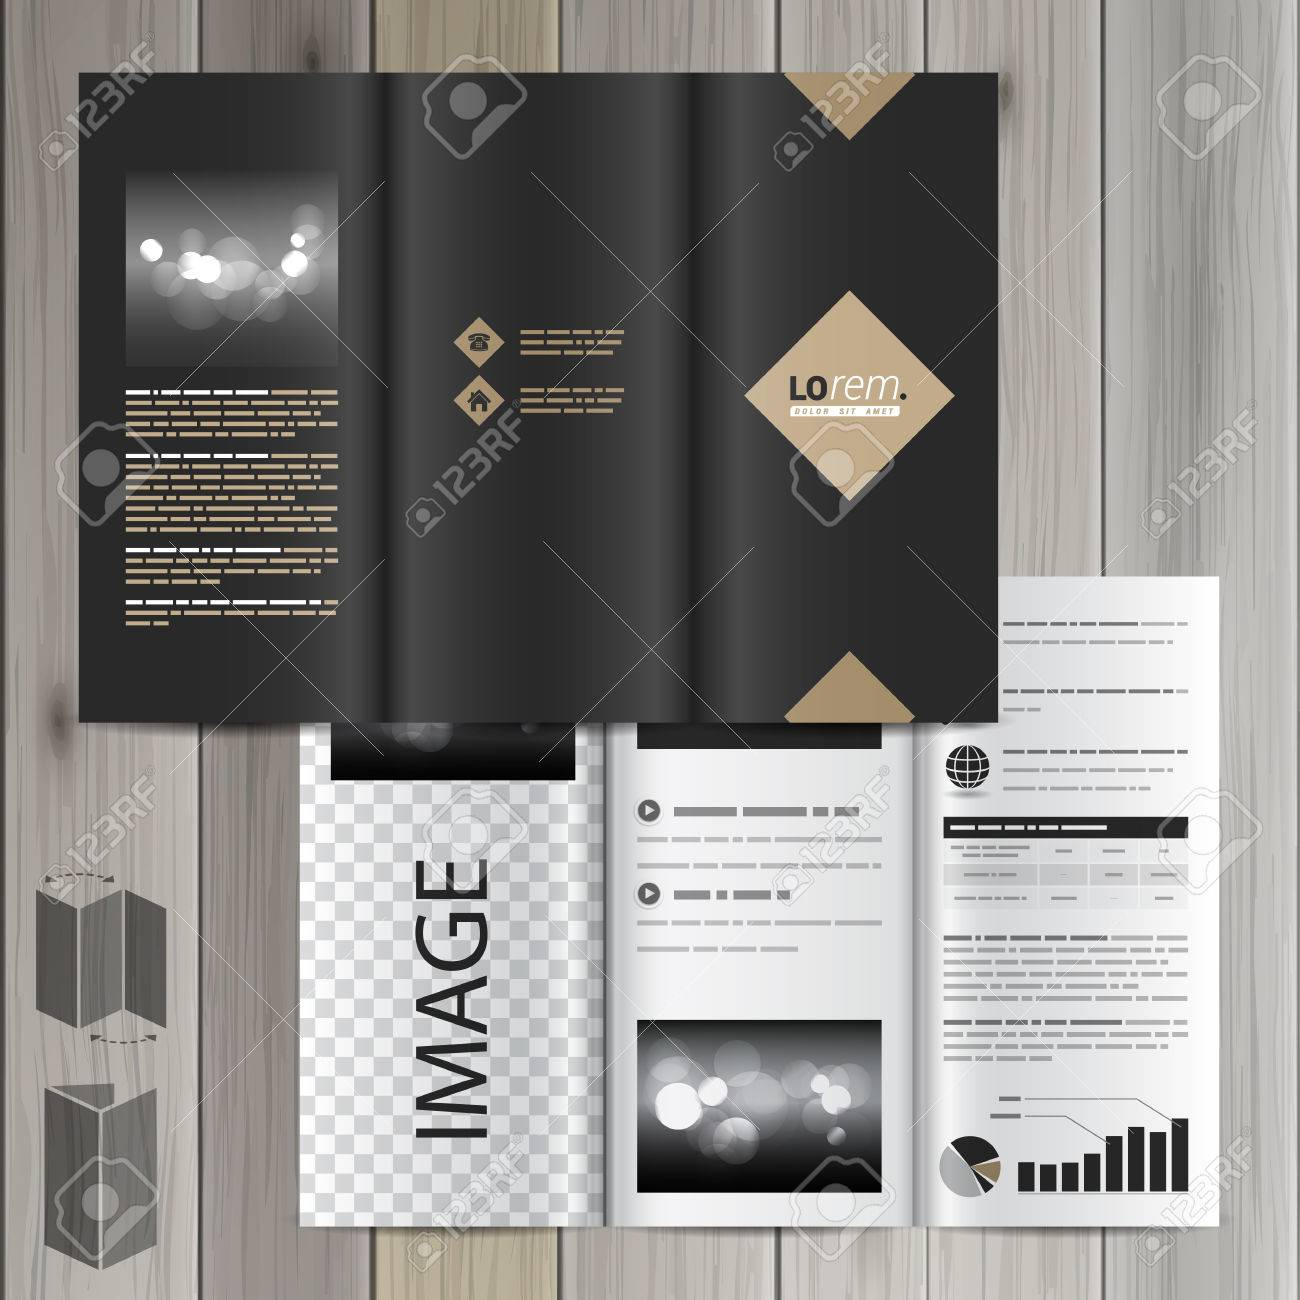 Classic Black Brochure Template Design With Rhombus Cover Layout